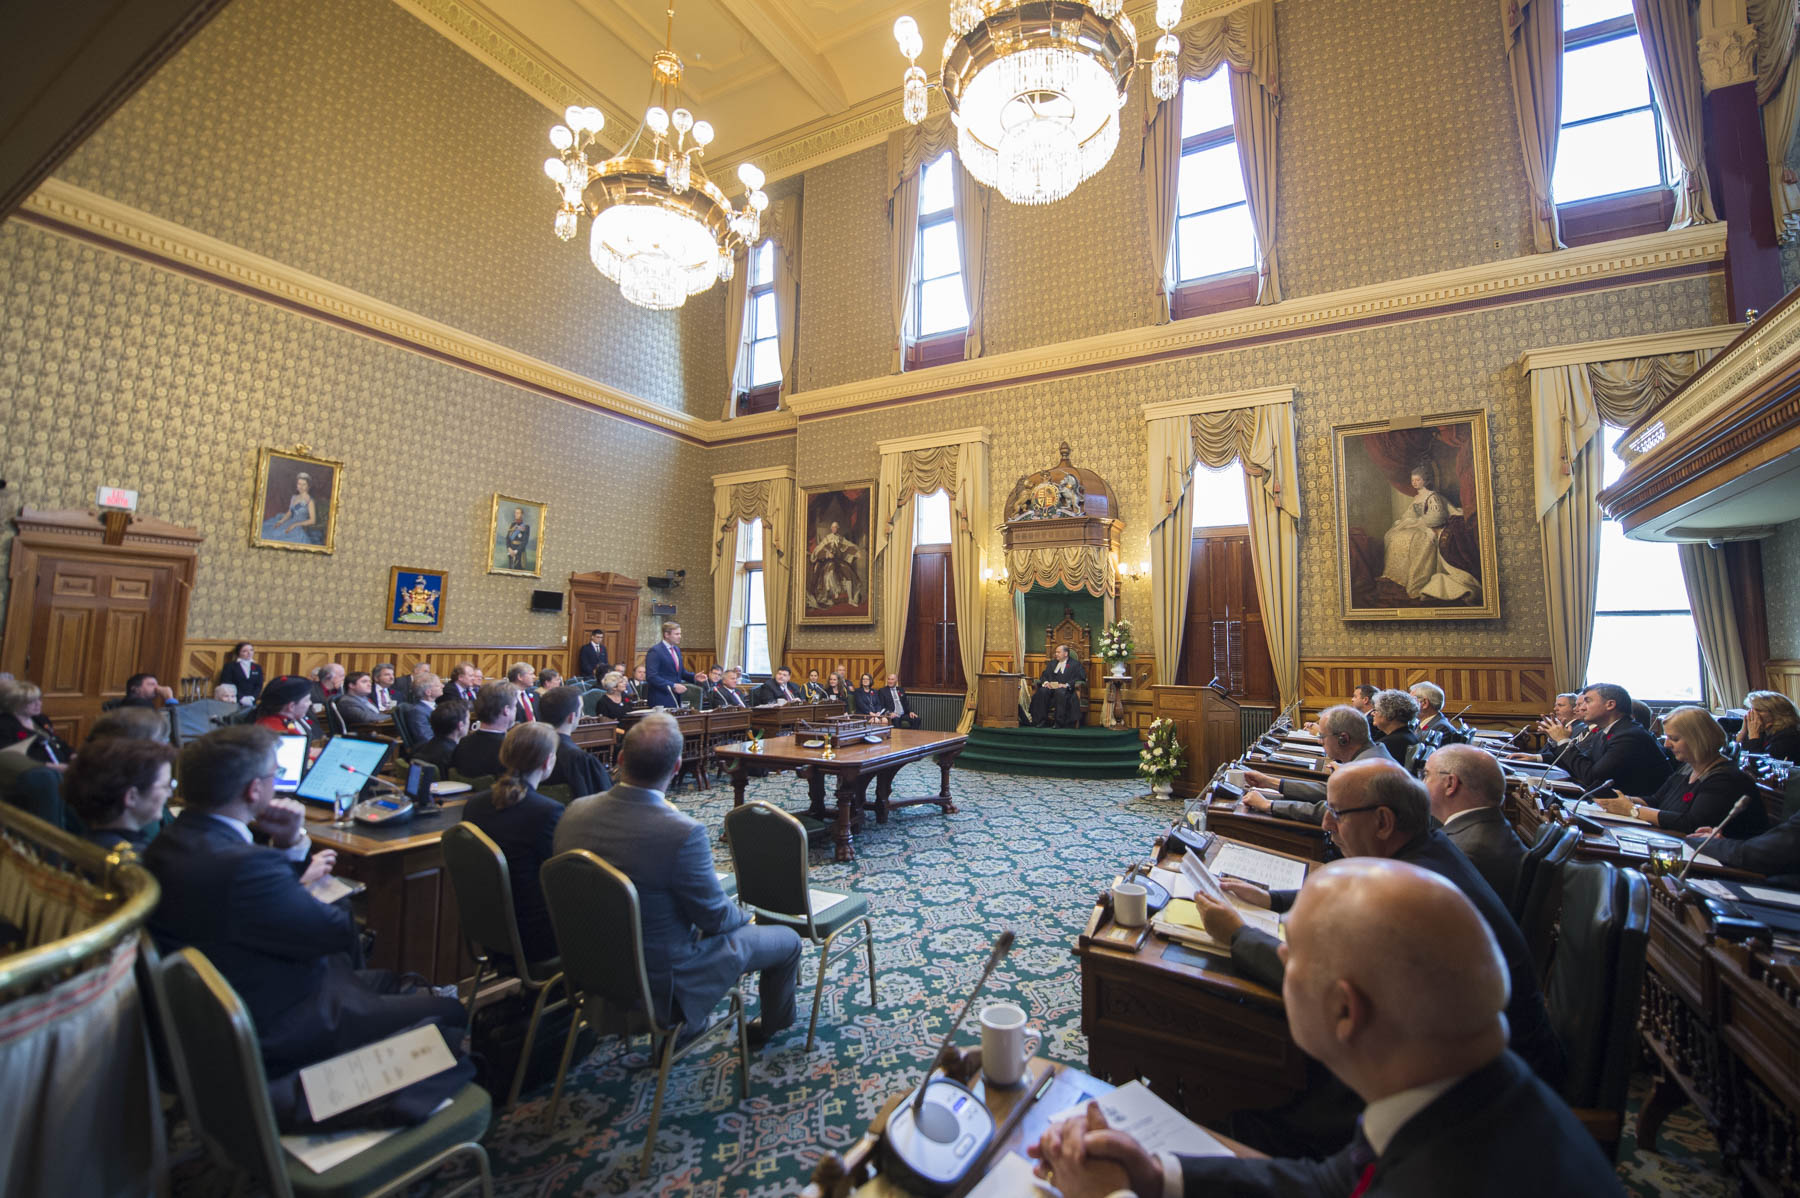 Later, Her Excellency addressed the members of the Legislative Assembly.